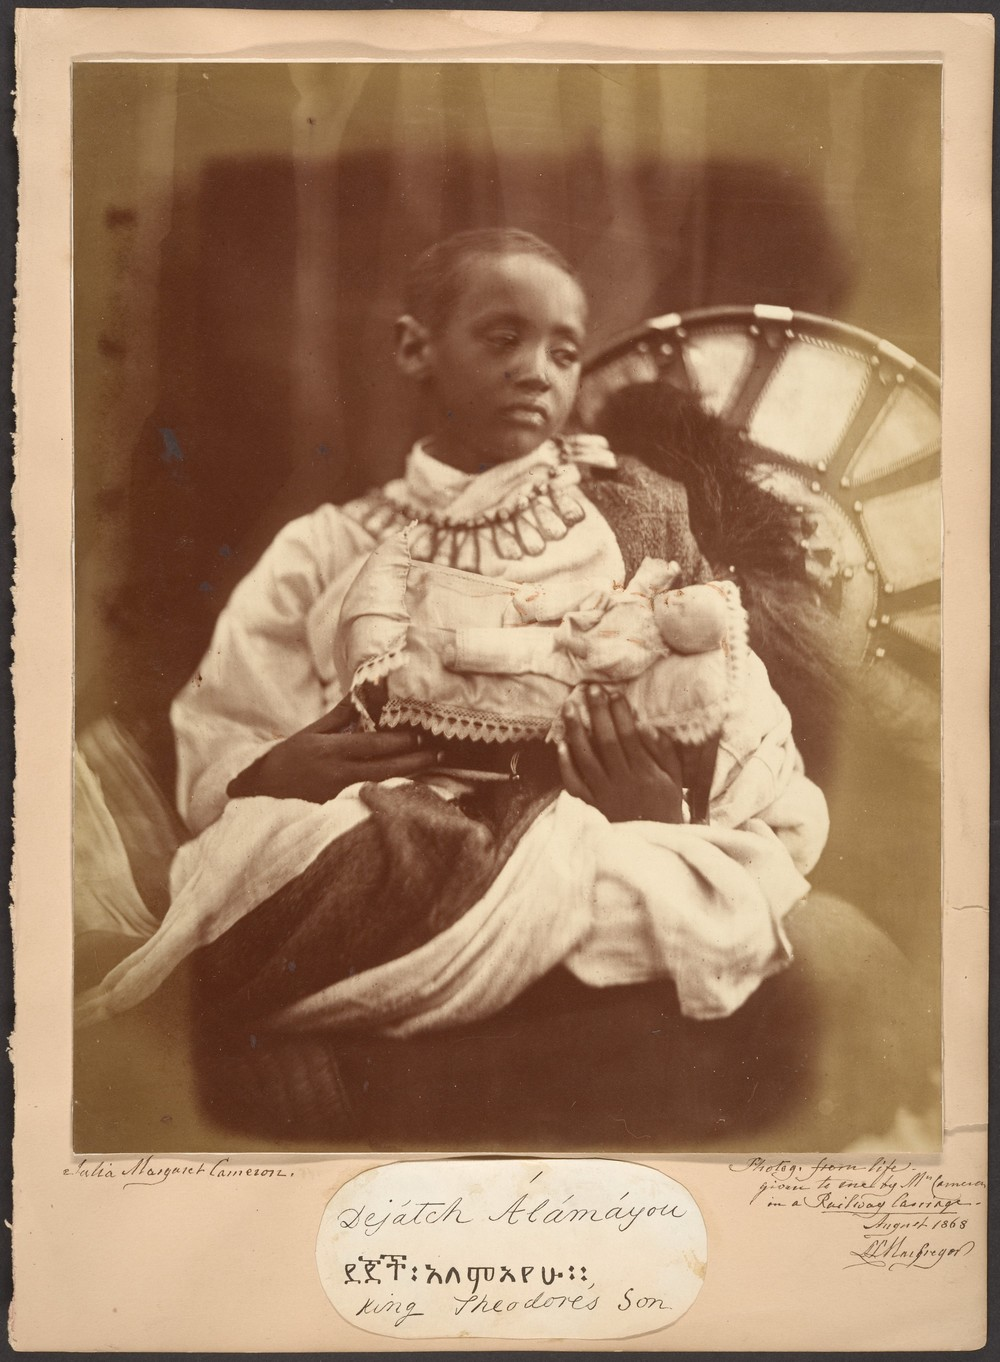 Déjatch Alamyaou, King Theodore's son / Julia Margaret Cameron / 1868 (credit: Metropolitan Museum of Art)